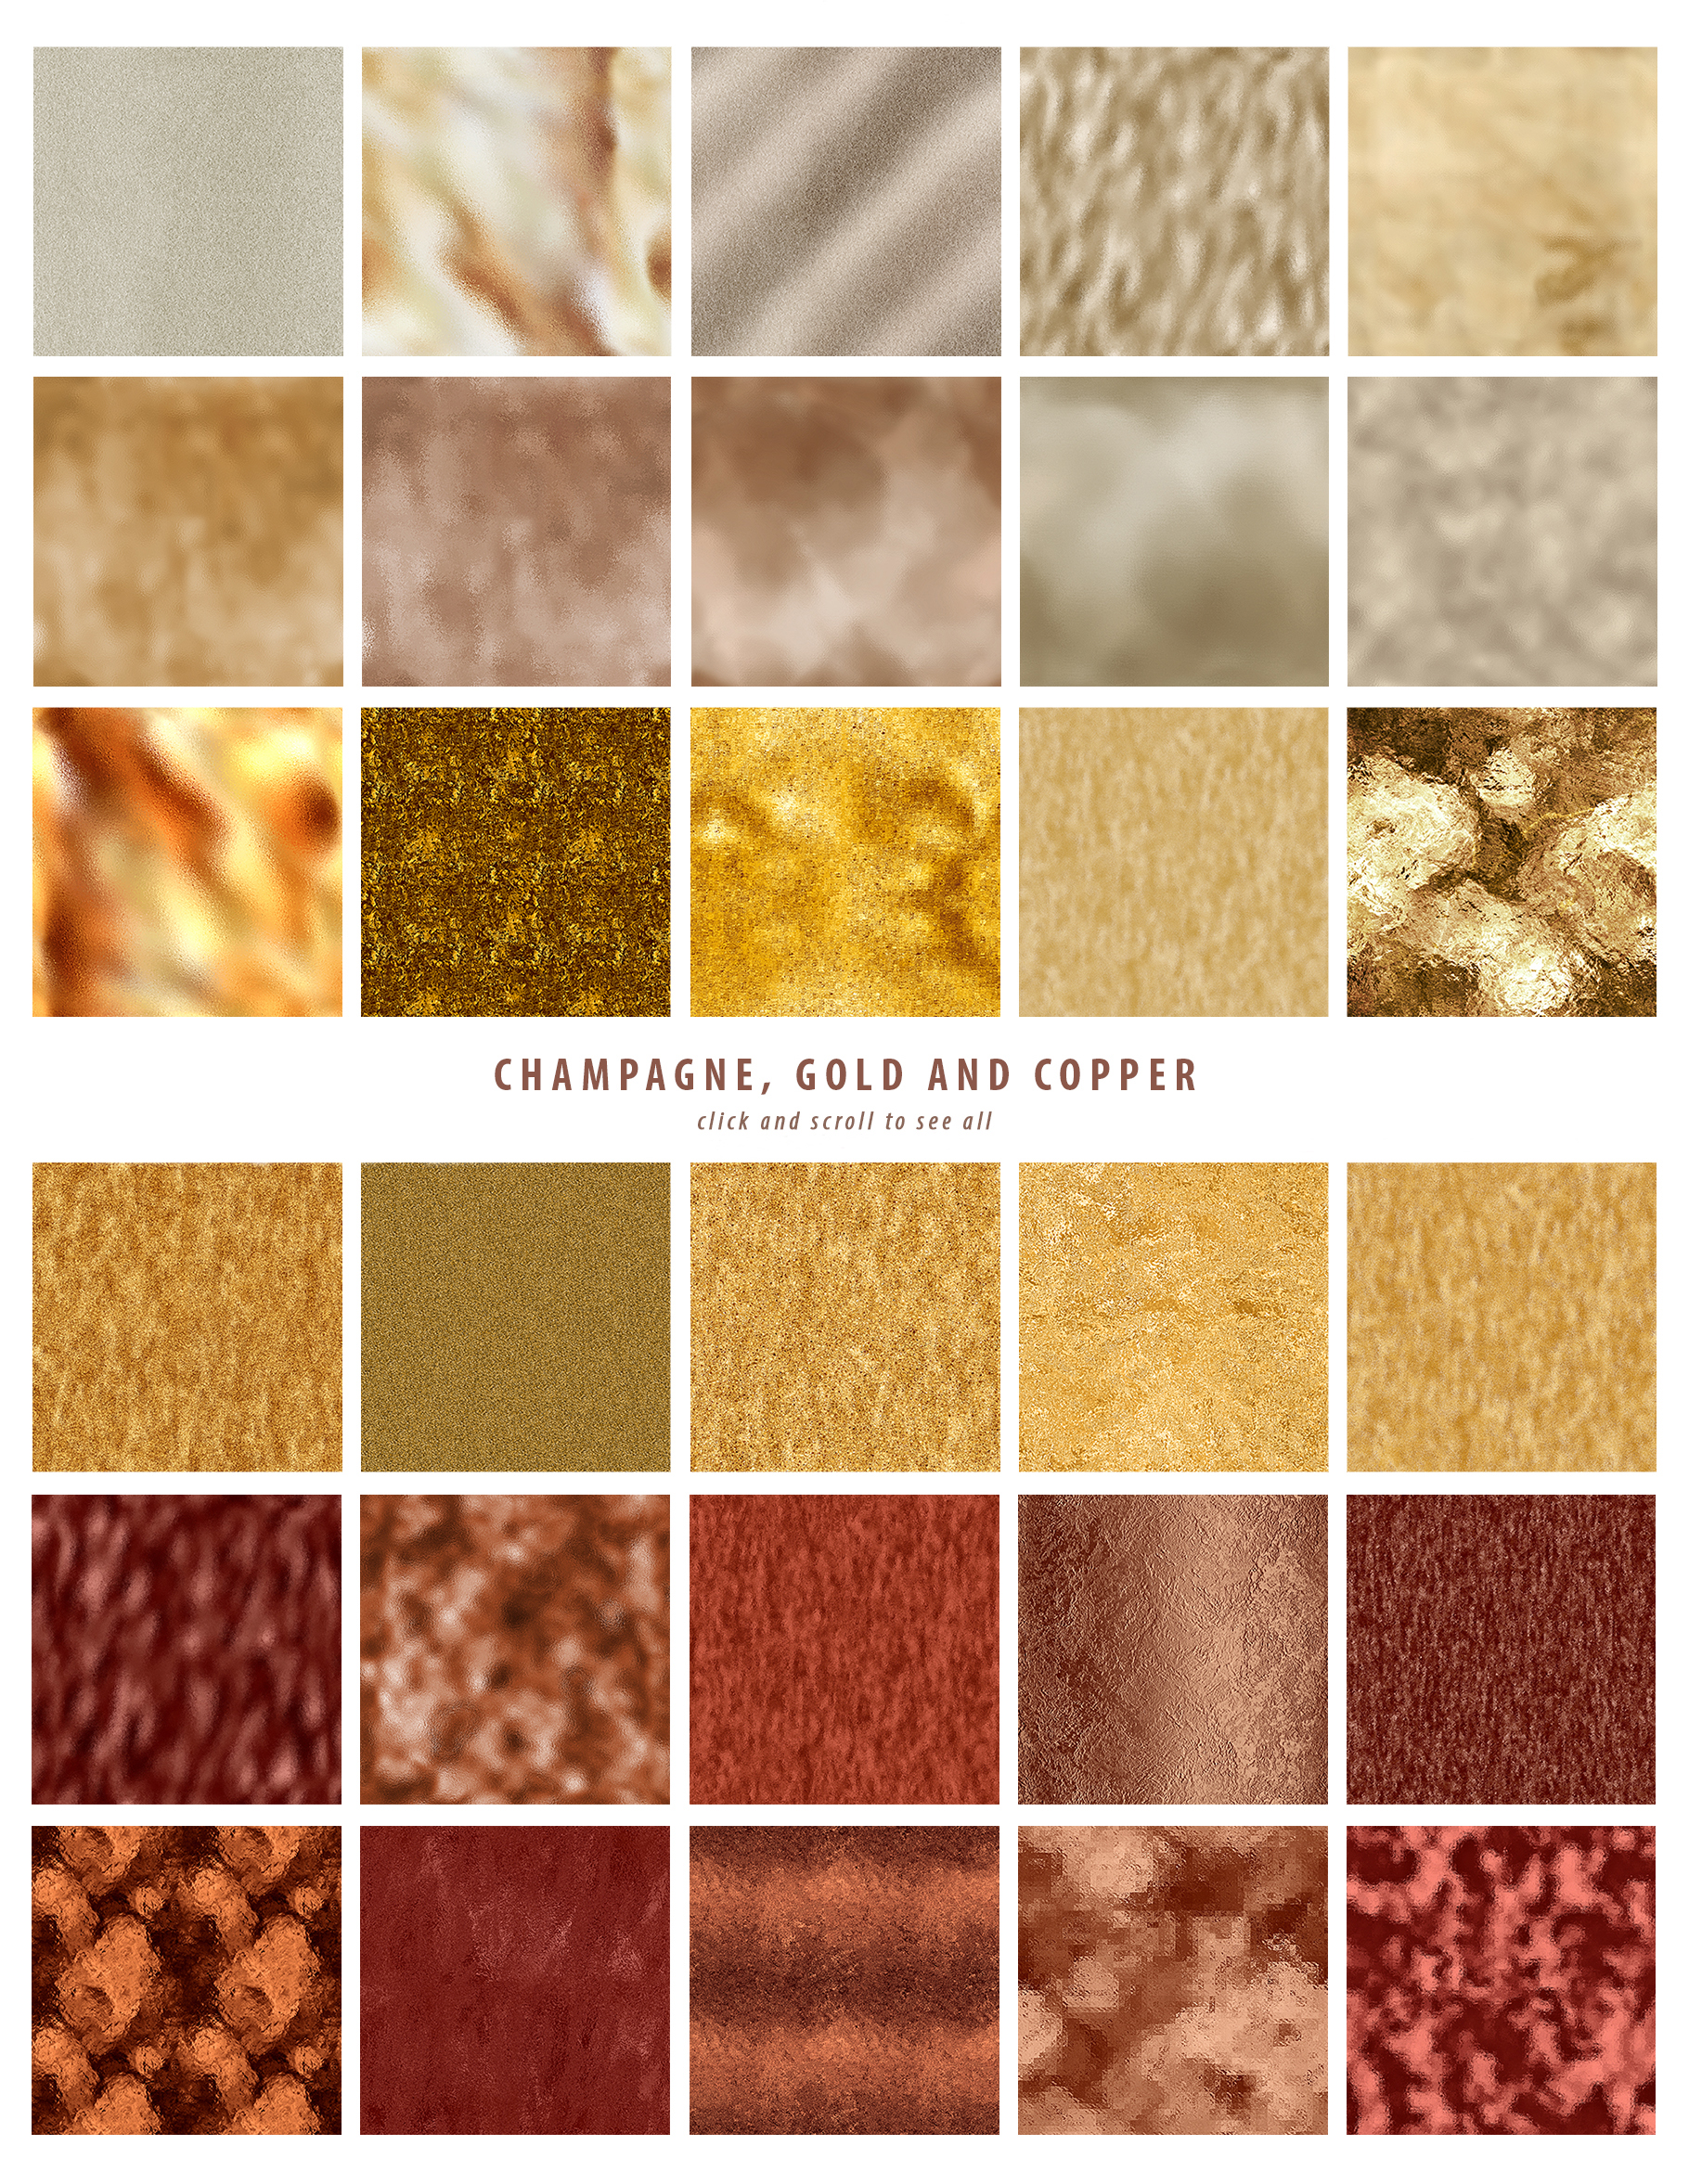 Luxe - 200 Textures and Patterns - Foil, Glitter, Marble example image 21